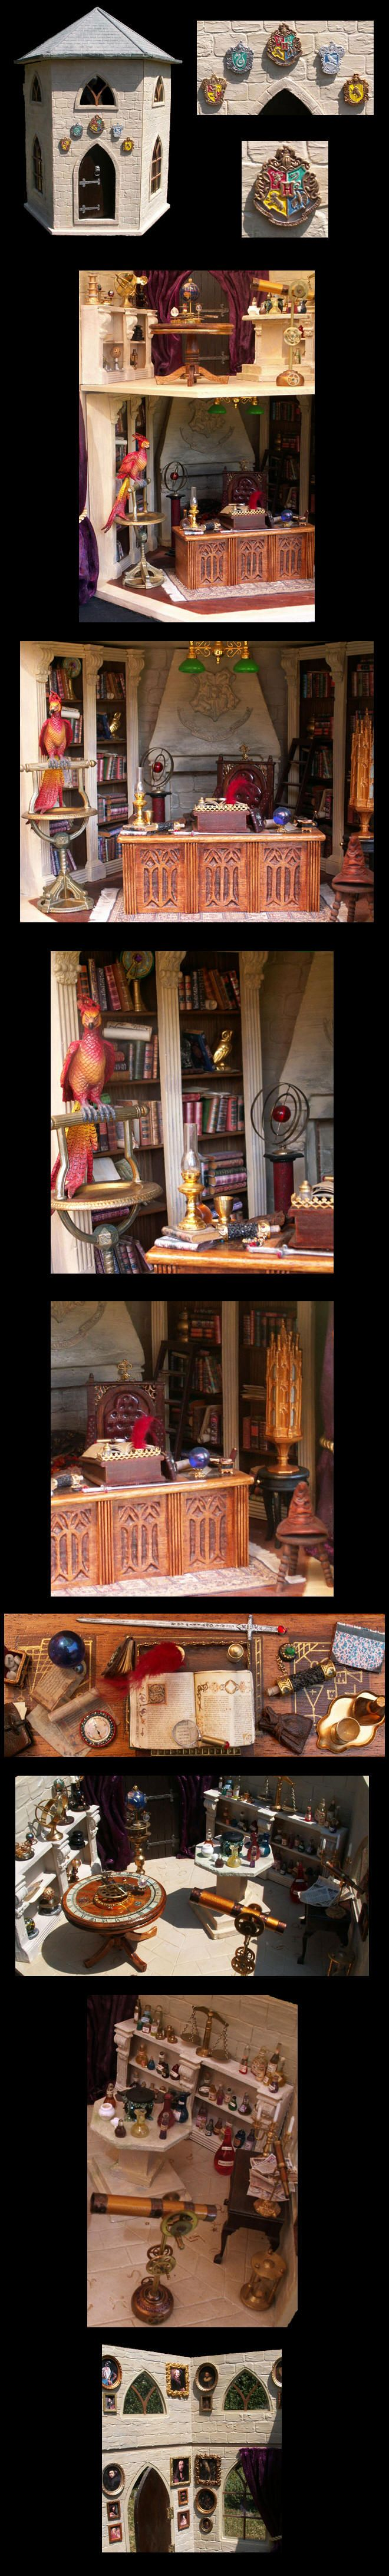 I have this doll house kit, and I also decorated with a Harry Potter theme, though mine looks a bit feeble compared to this one!